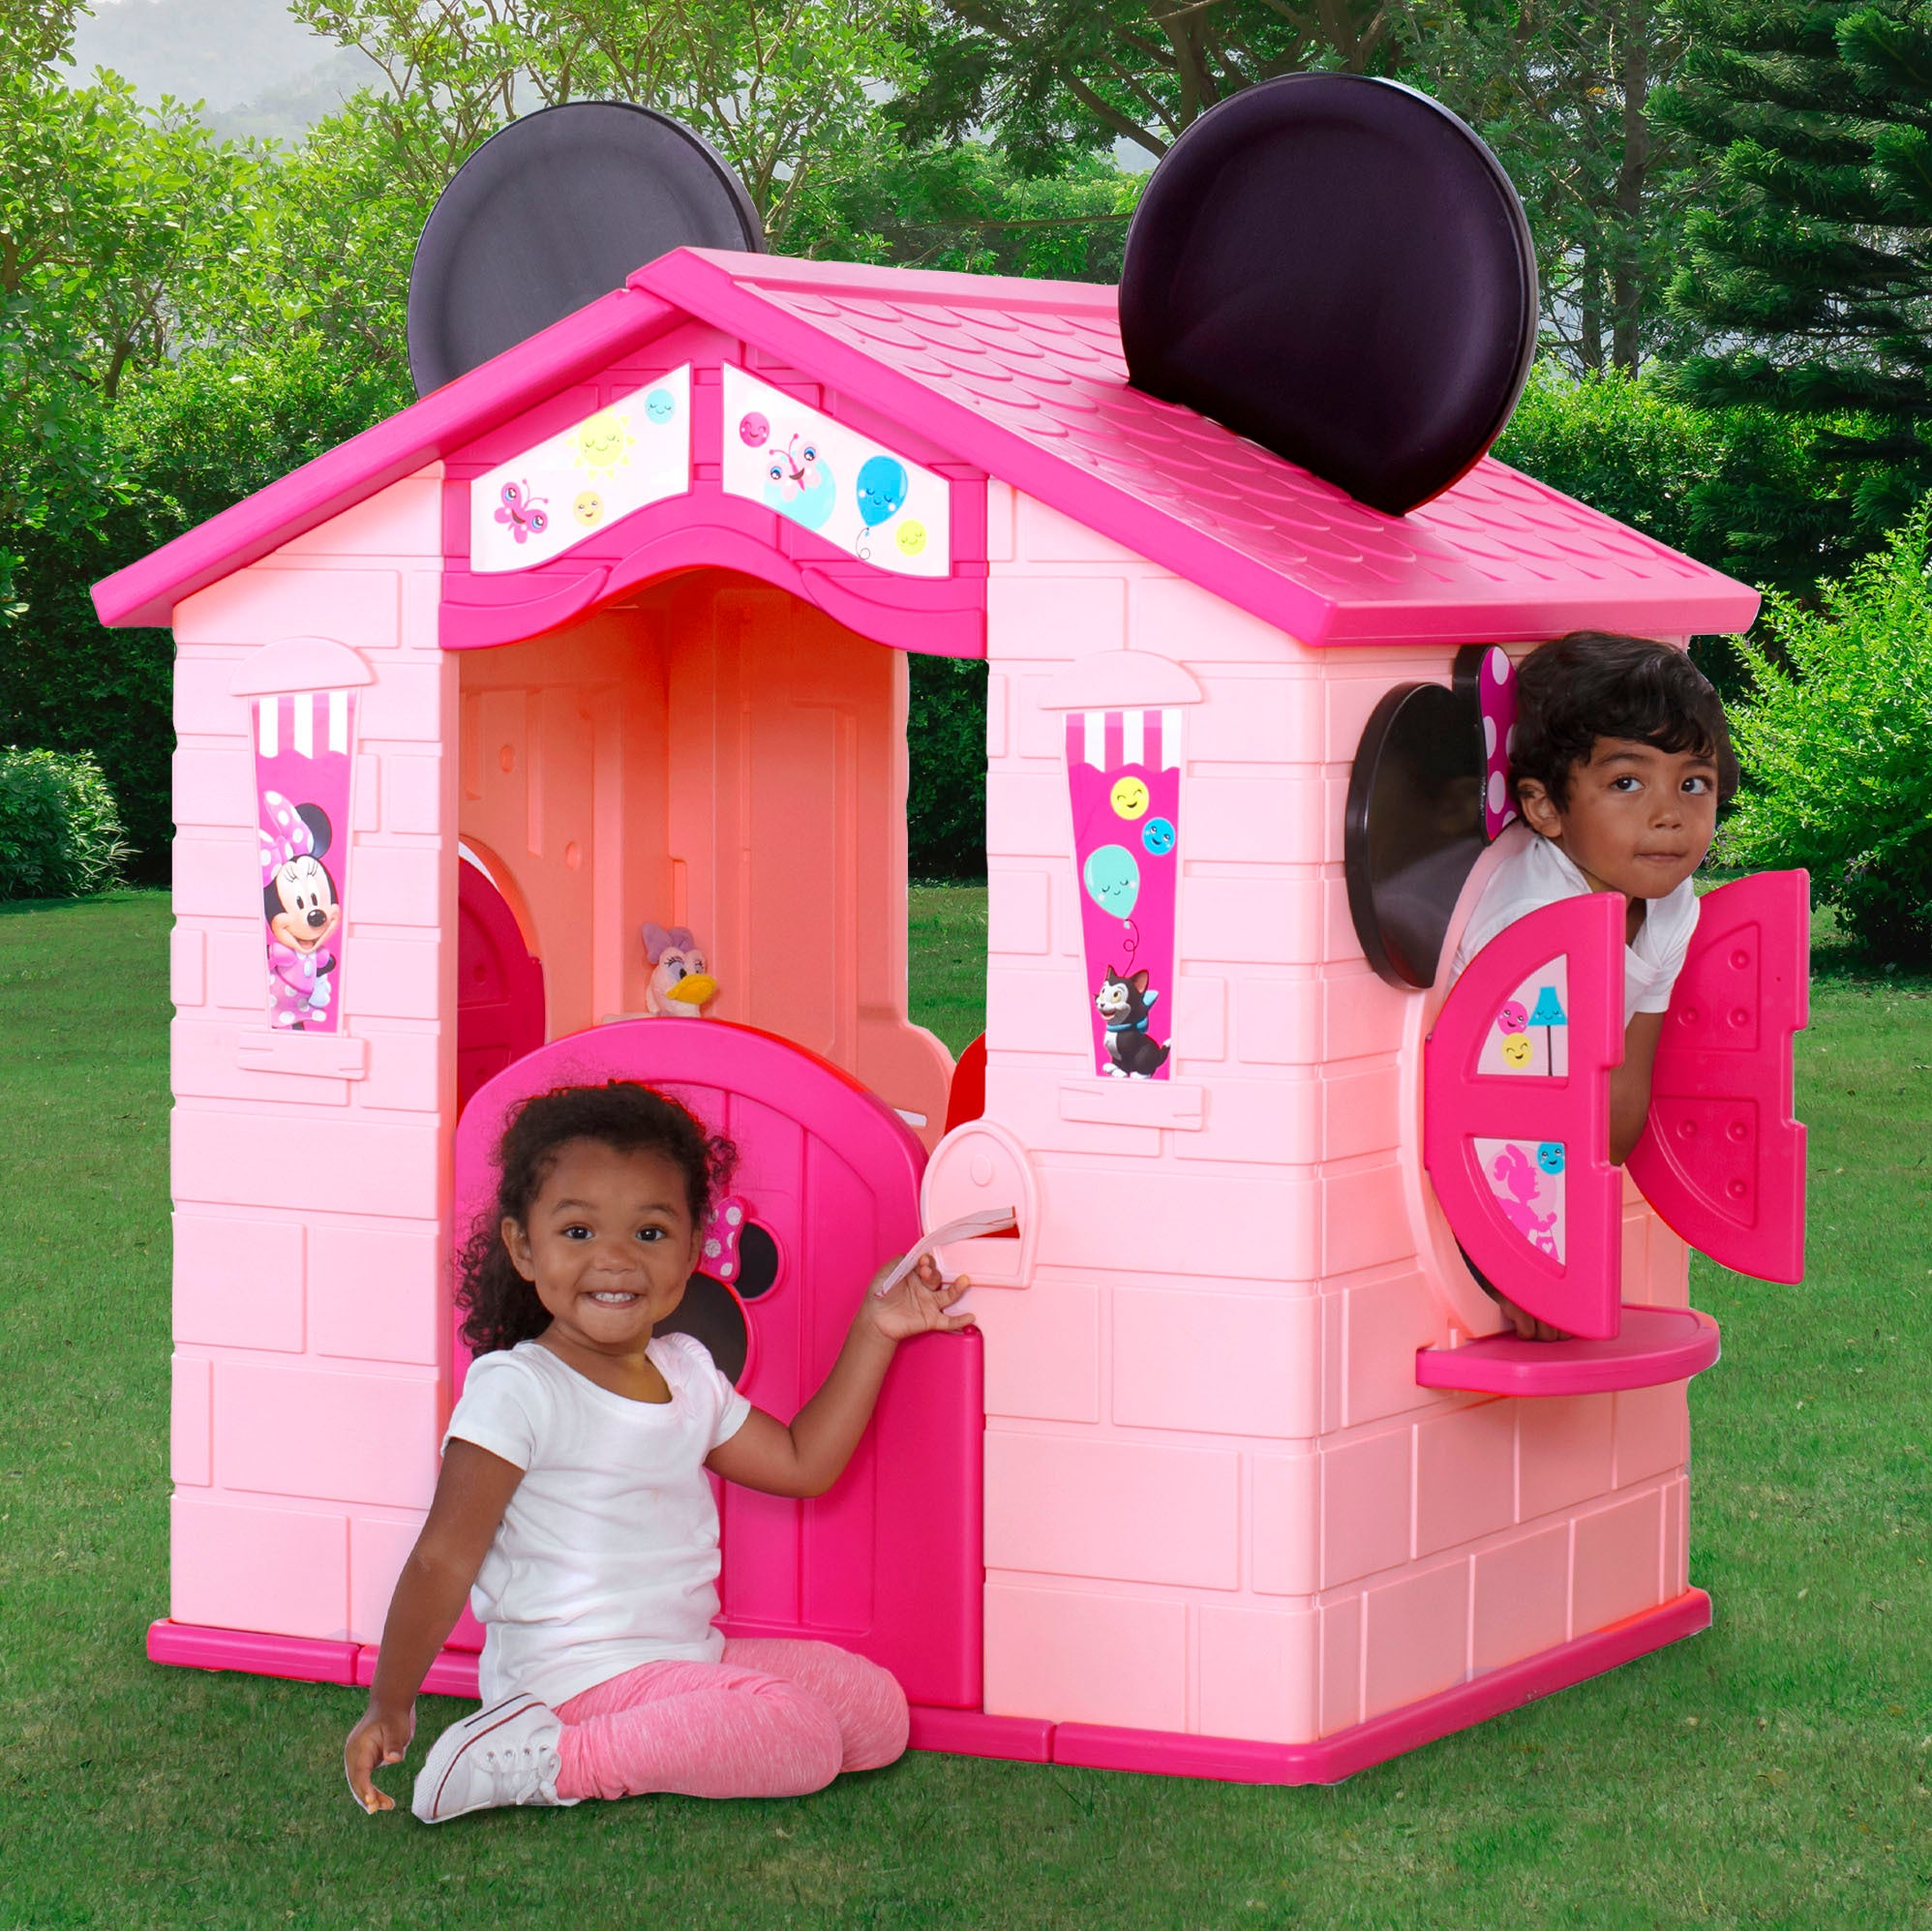 Minnie Mouse Plastic Indoor/Outdoor Playhouse with Easy Assembly